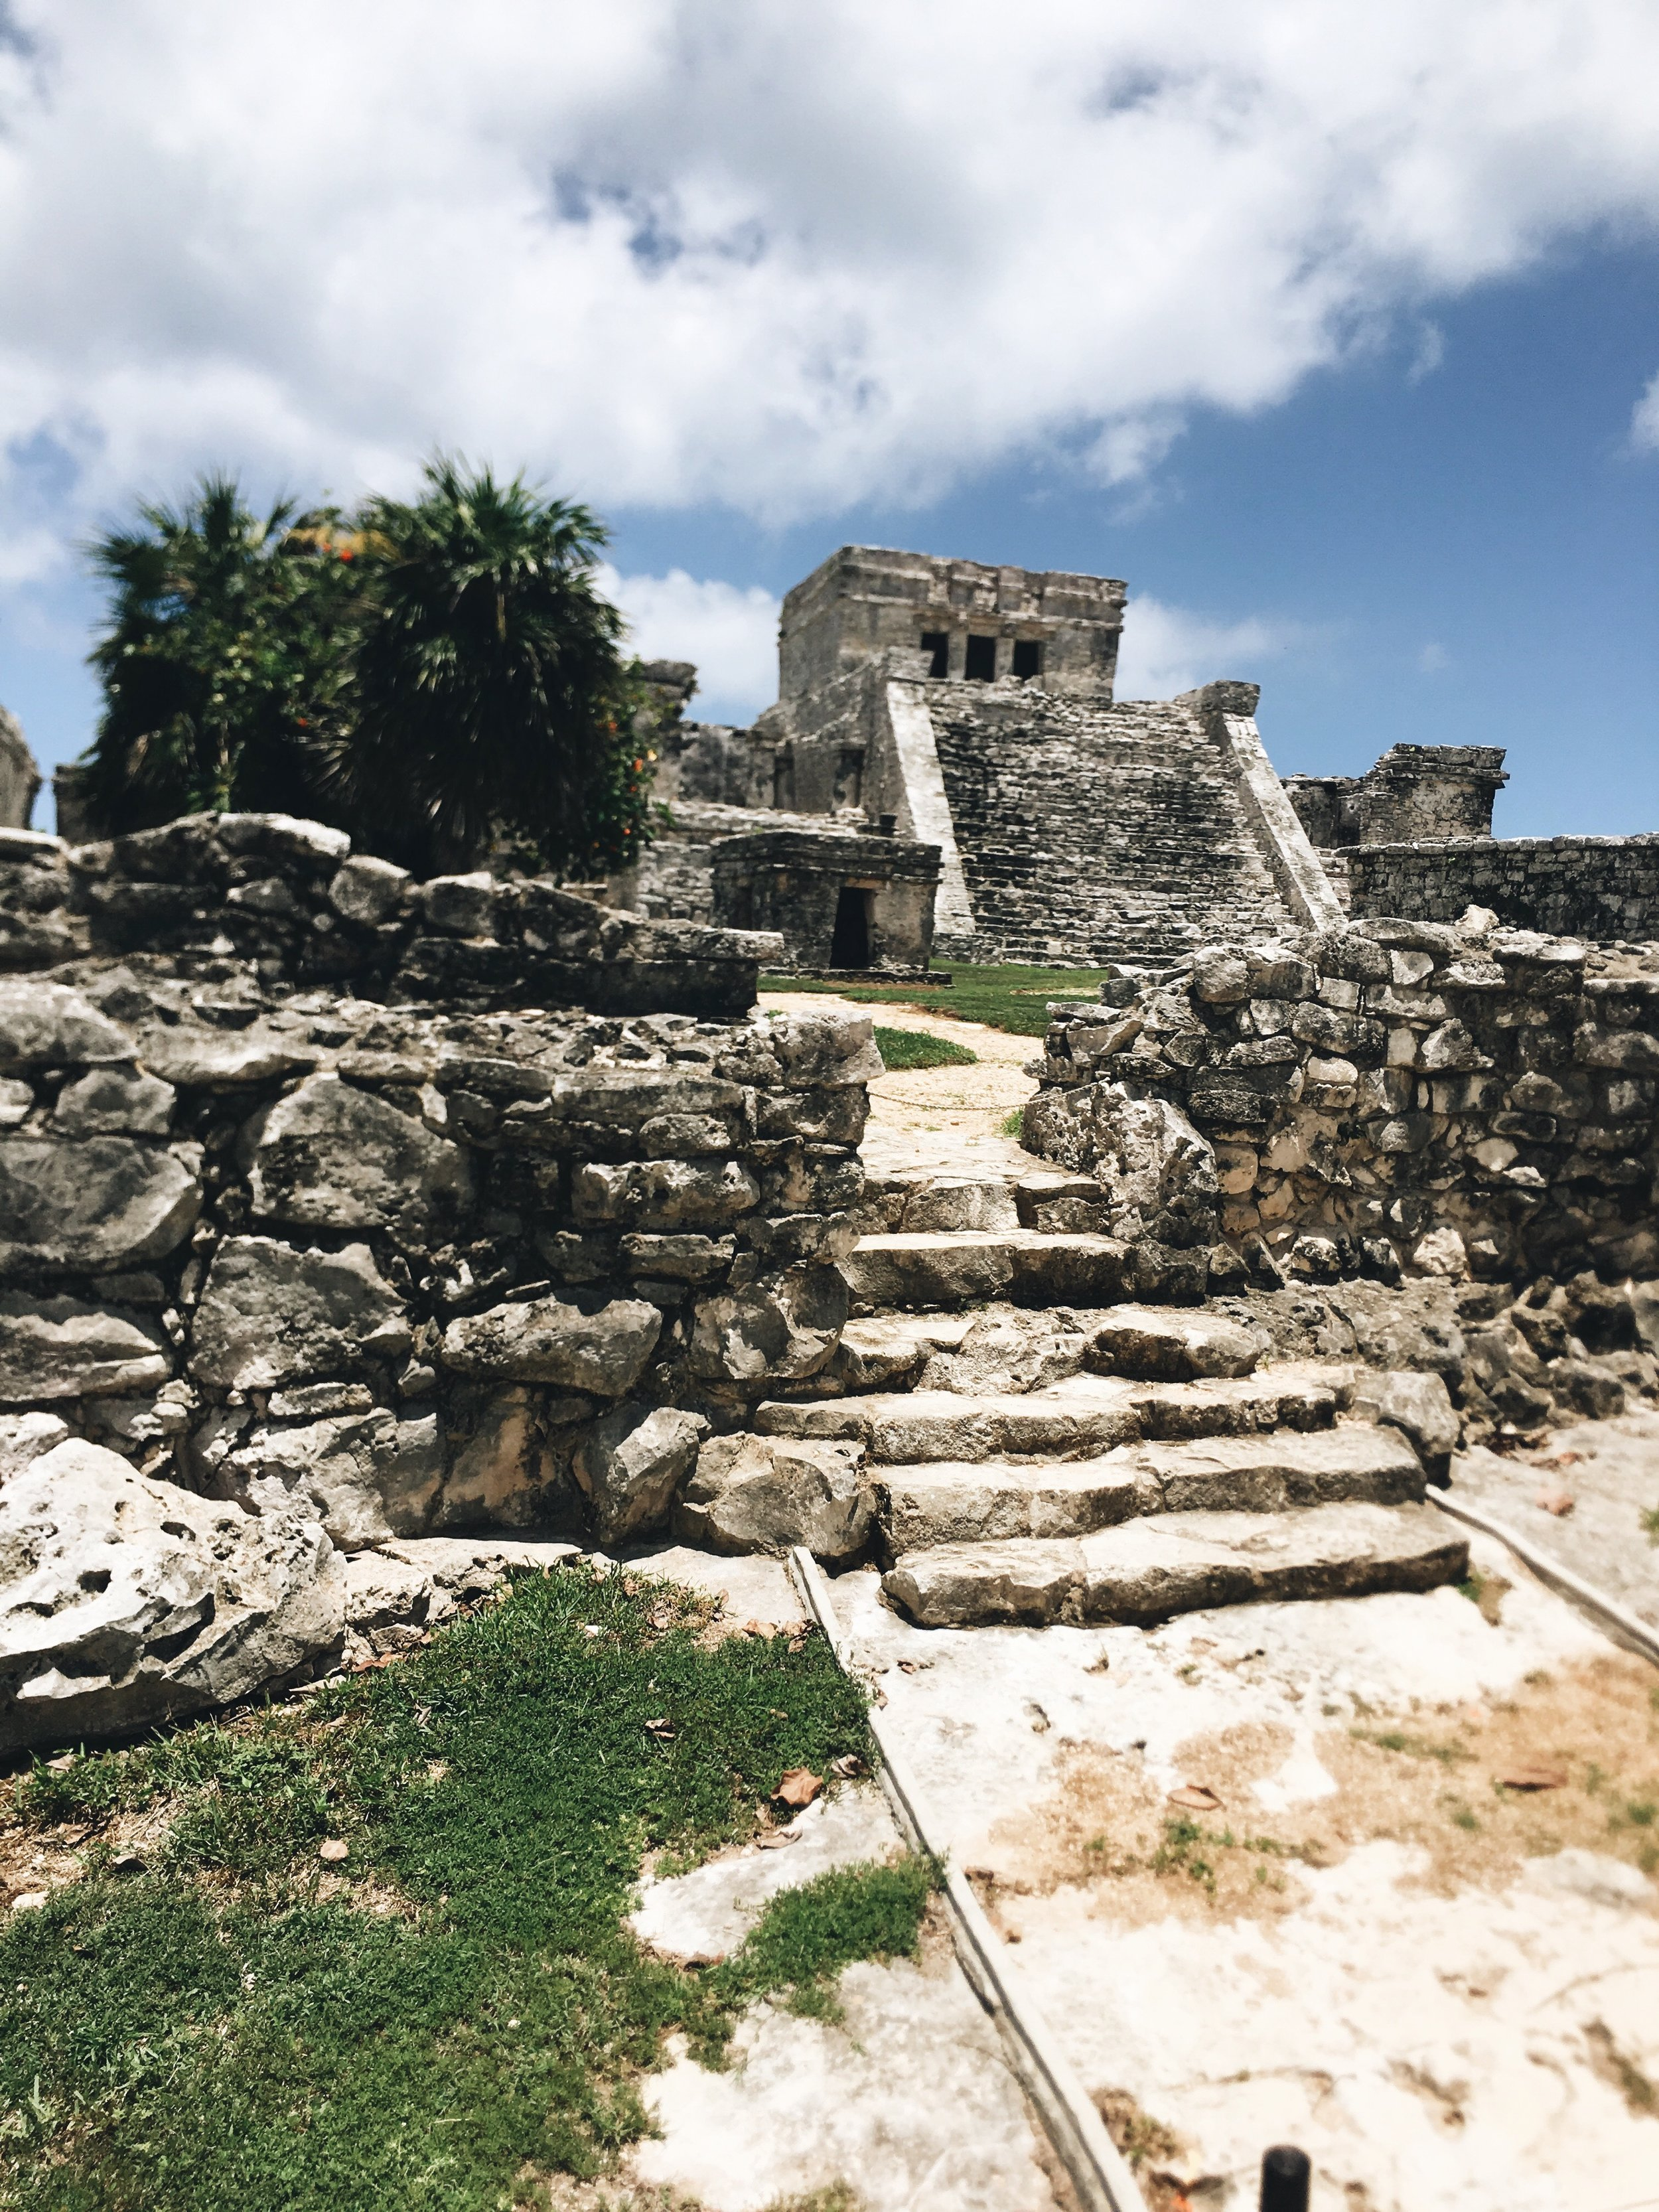 Tackling the Mayan Ruin hike after our bike ride was totally worth it.